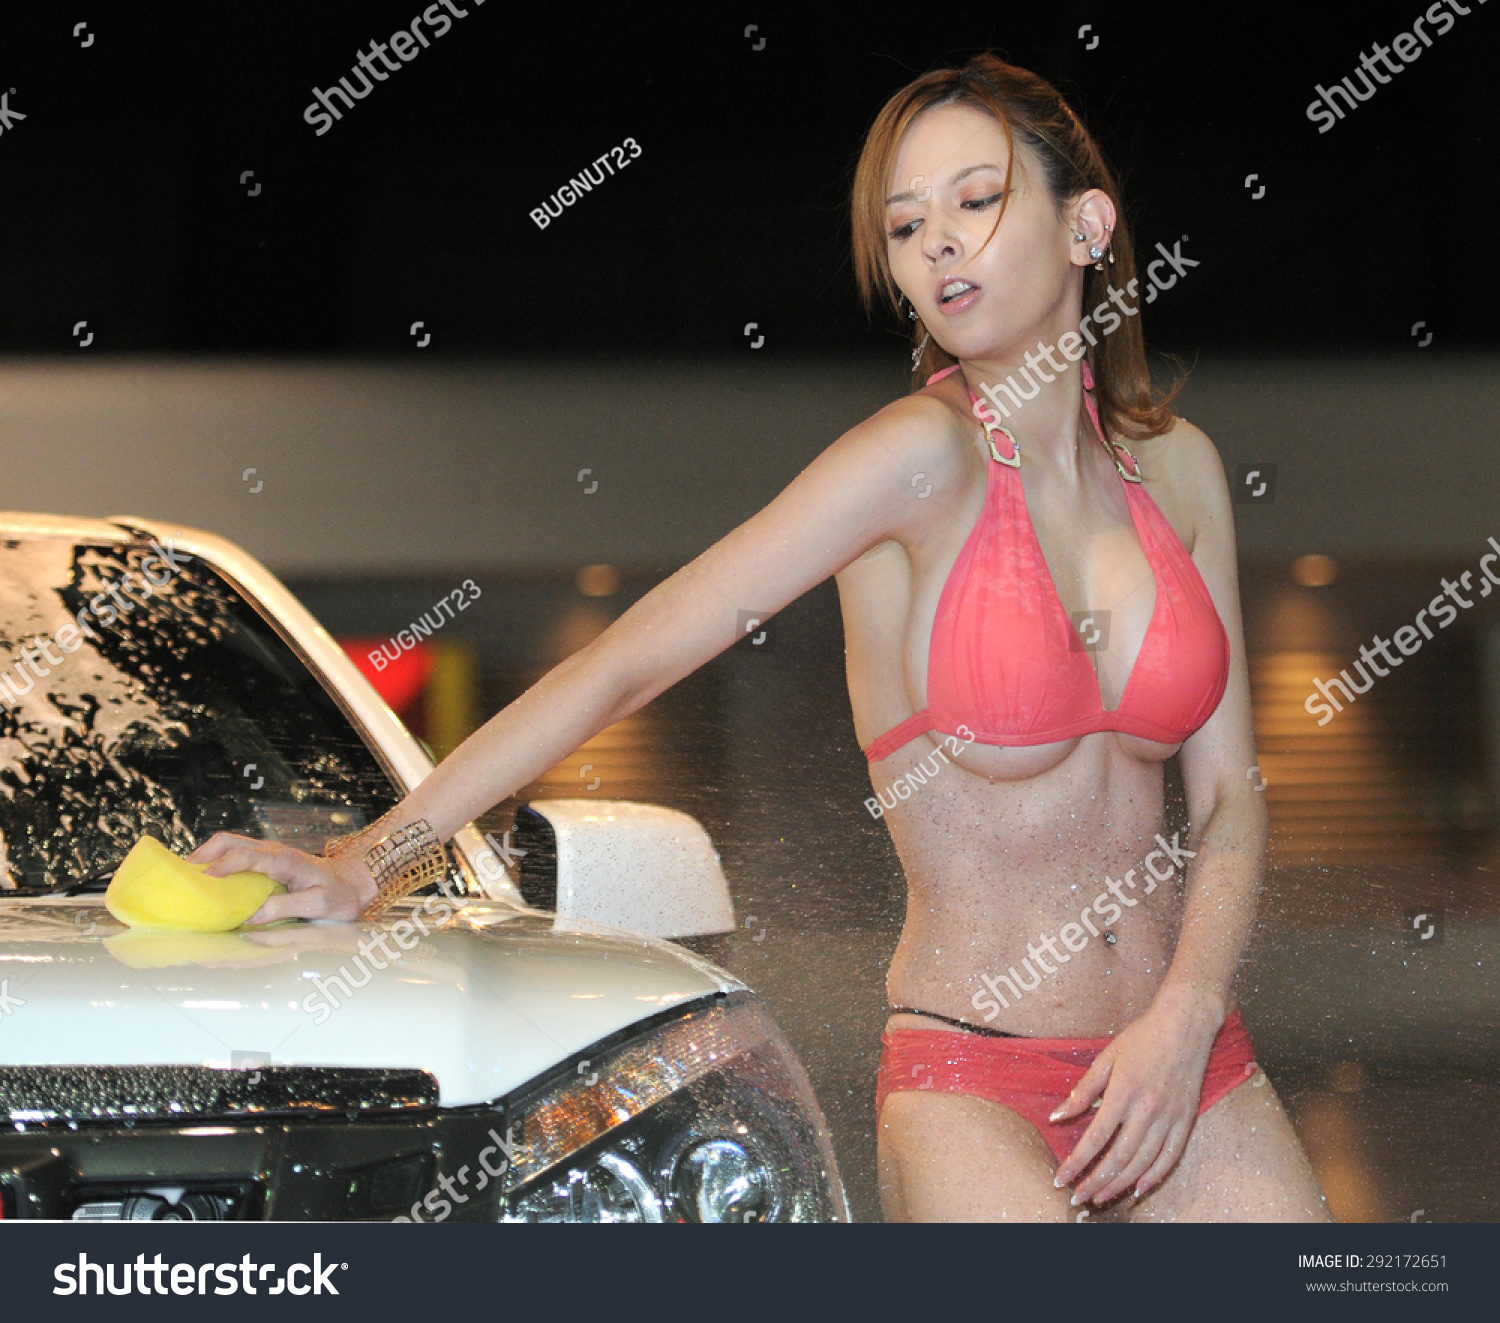 Bangkokthailand June 27 Japanese Av Actress Misaki Rola Show Sexy Car Wash